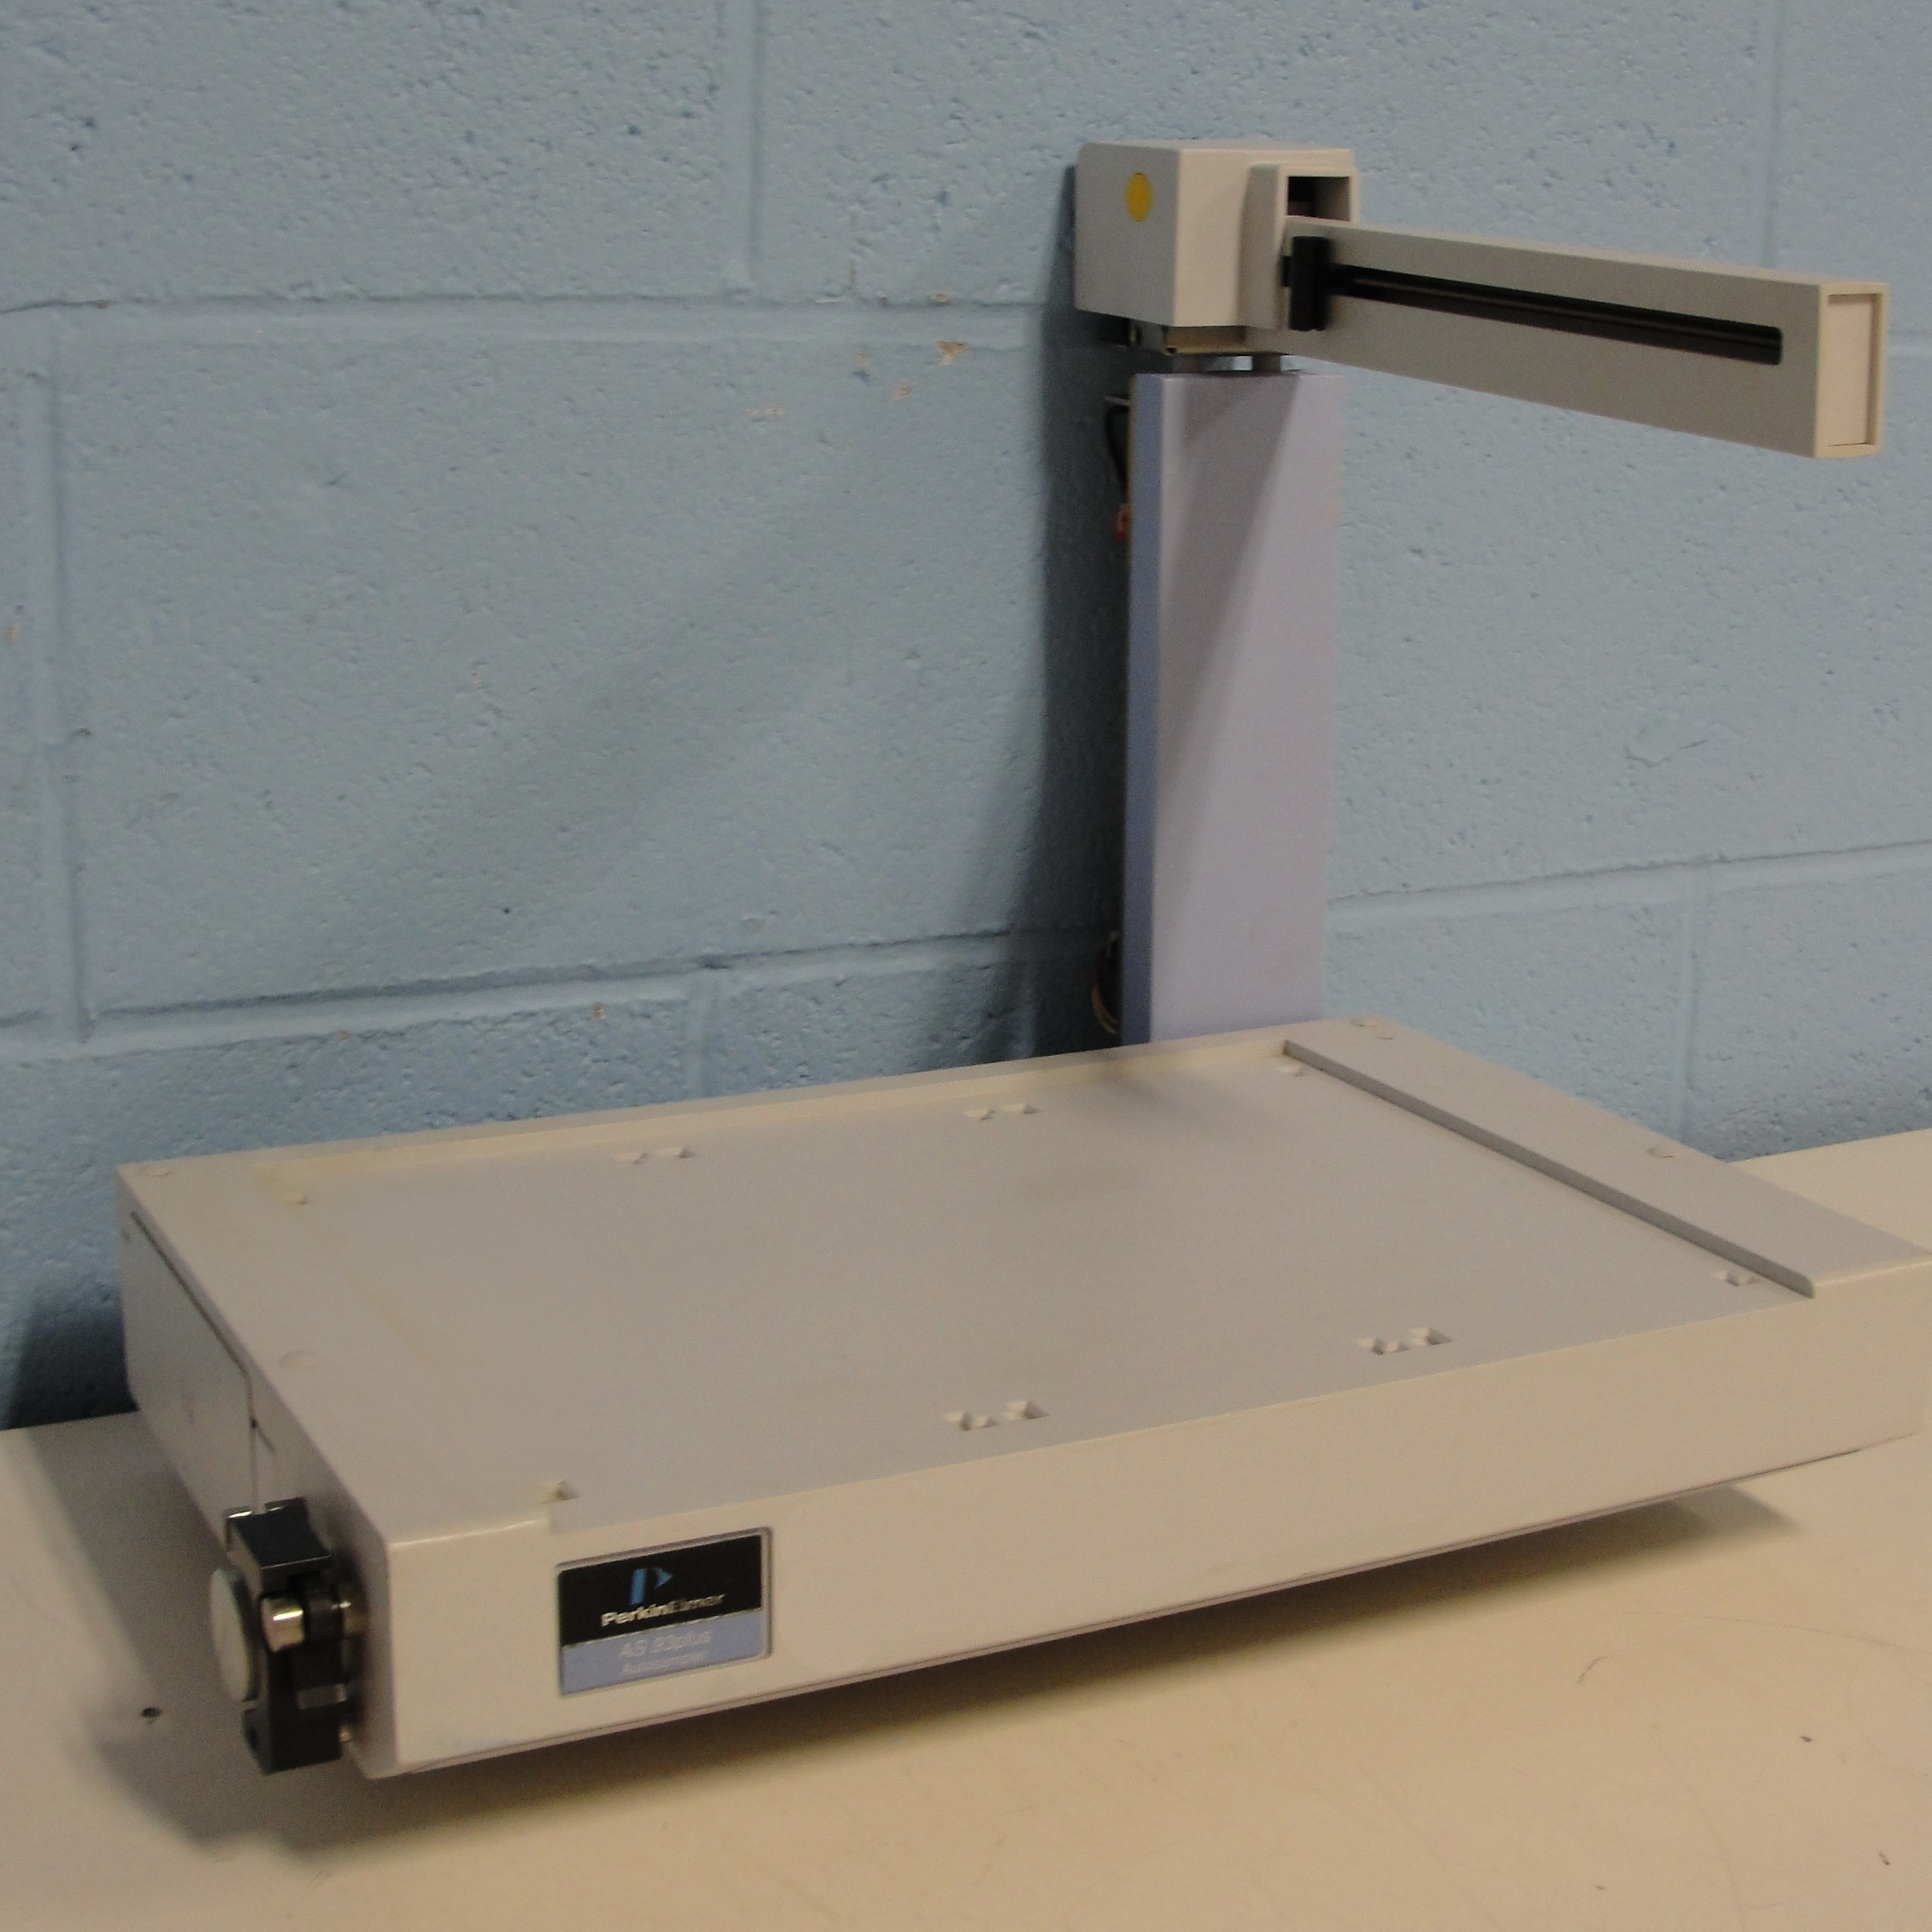 Perkin Elmer AS 93 Plus Autosampler Image